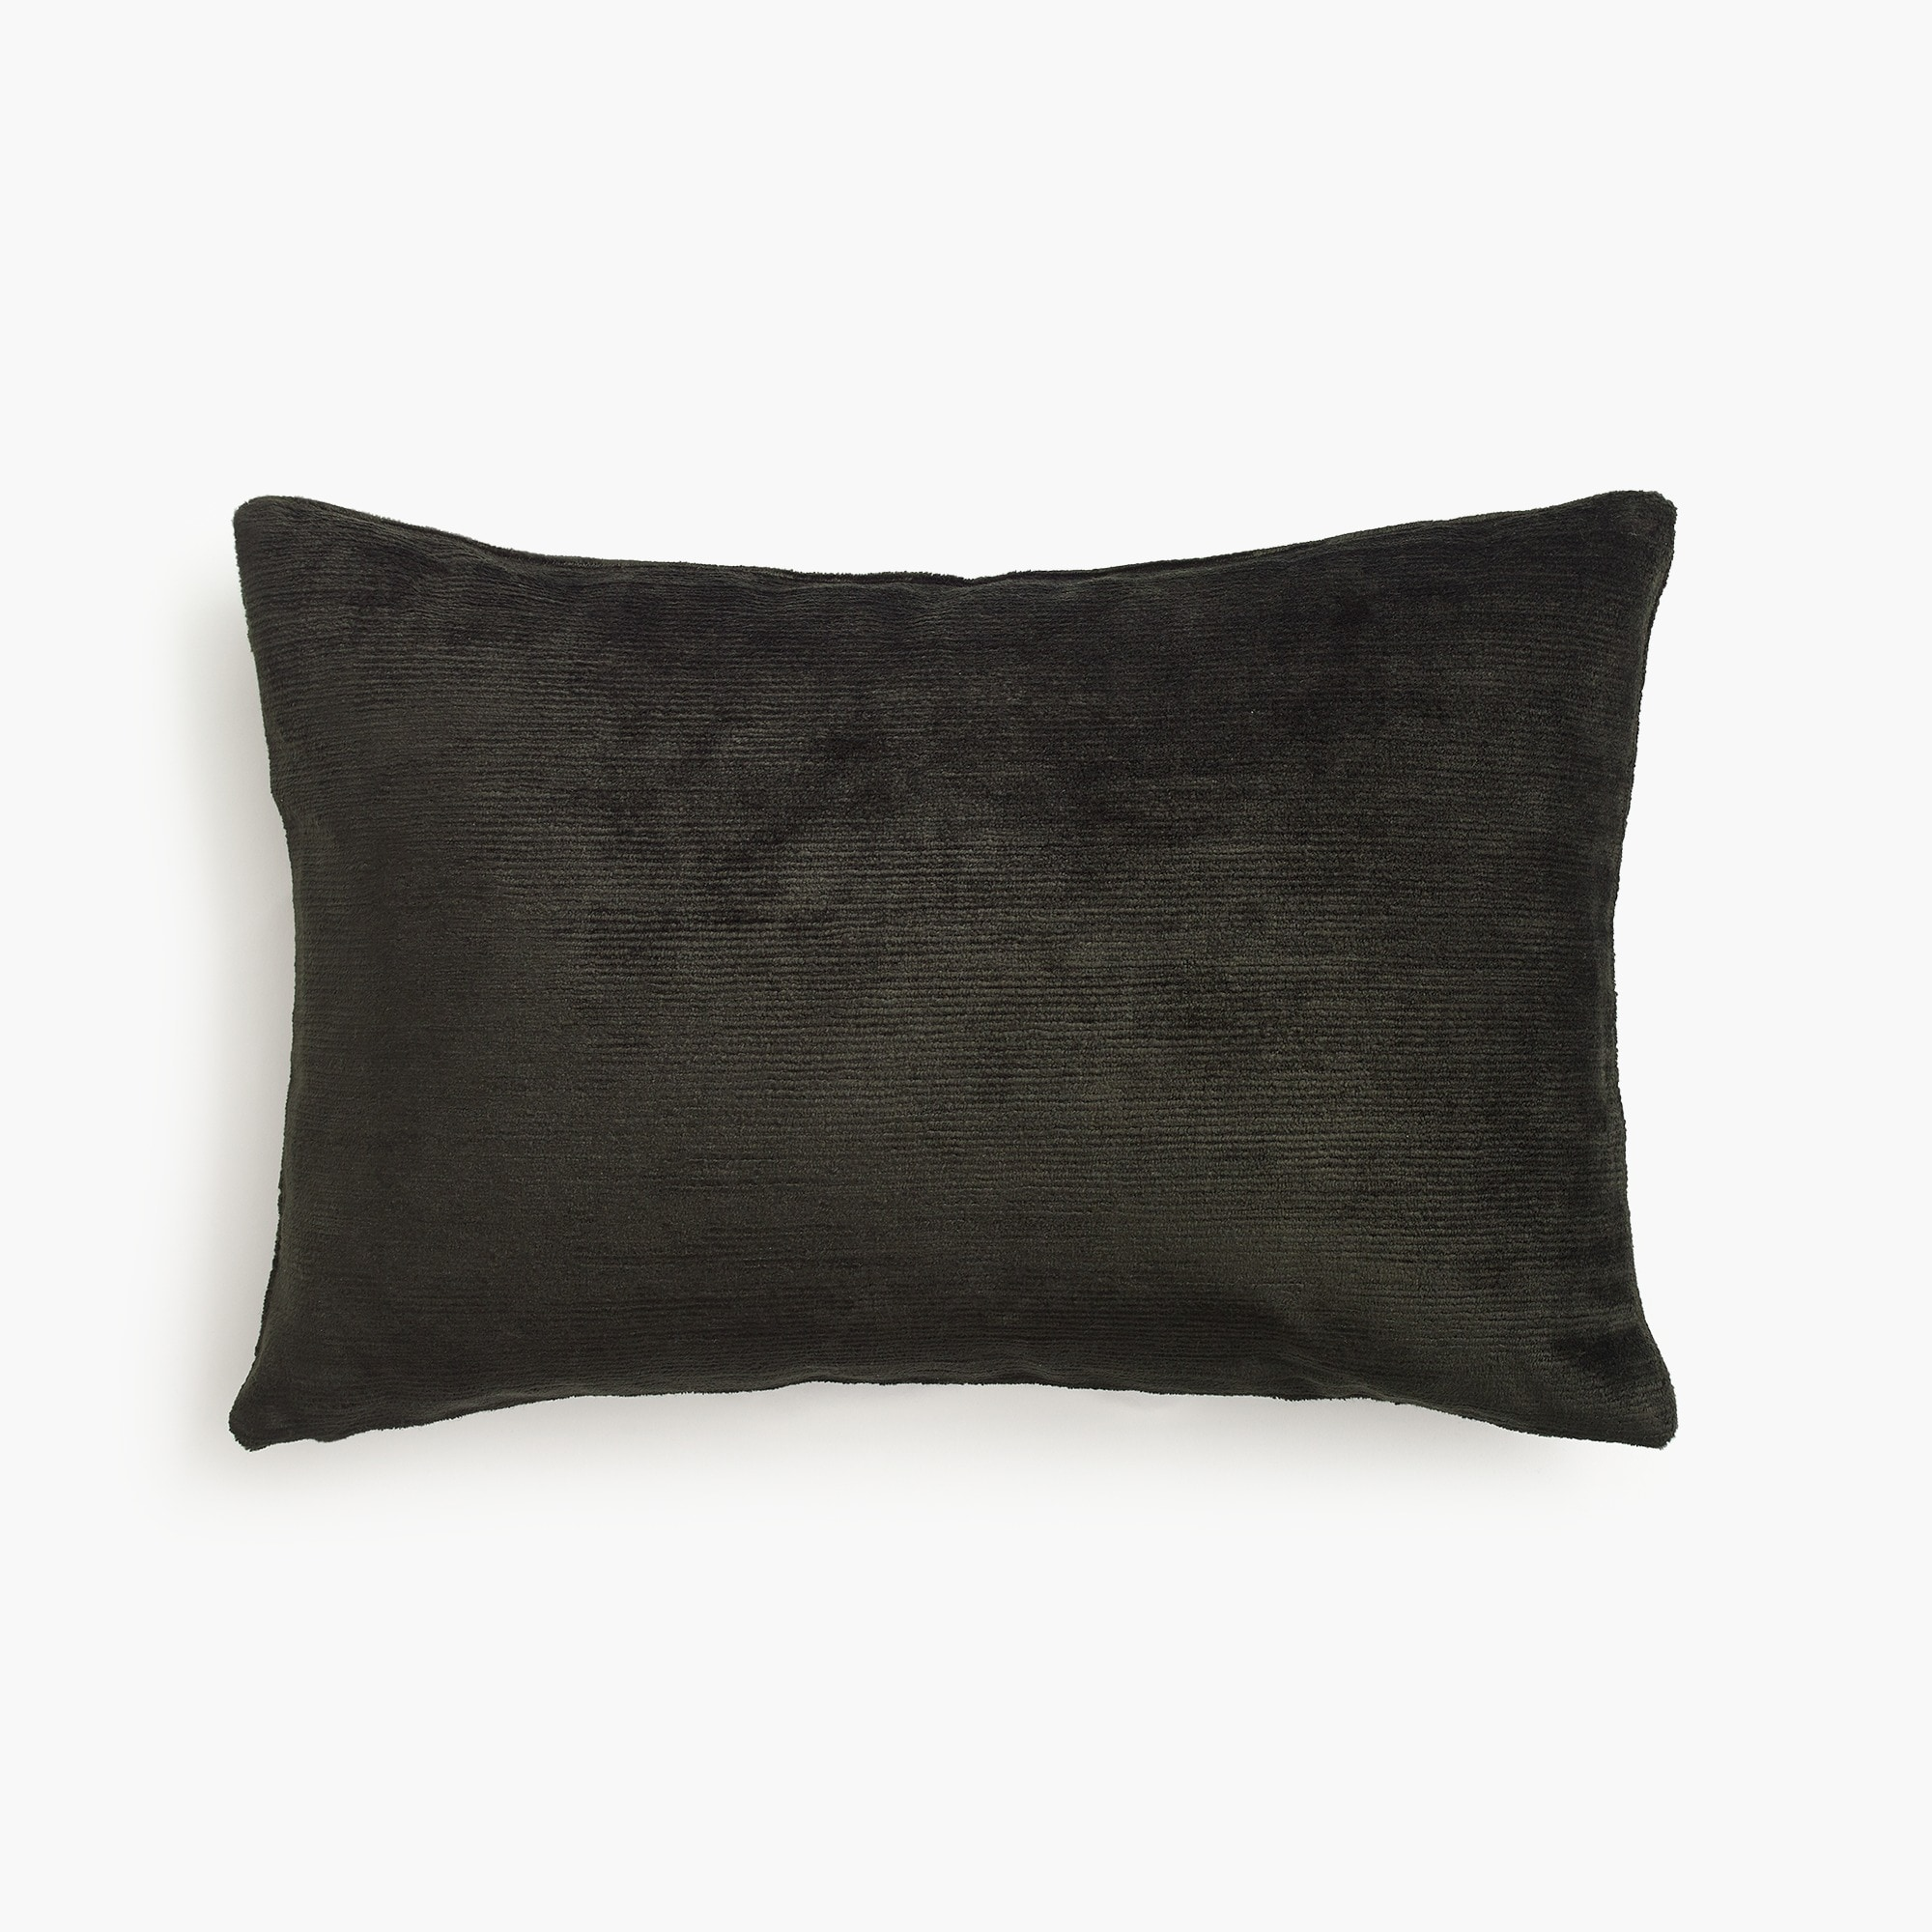 mens Compono velvet lumbar pillow